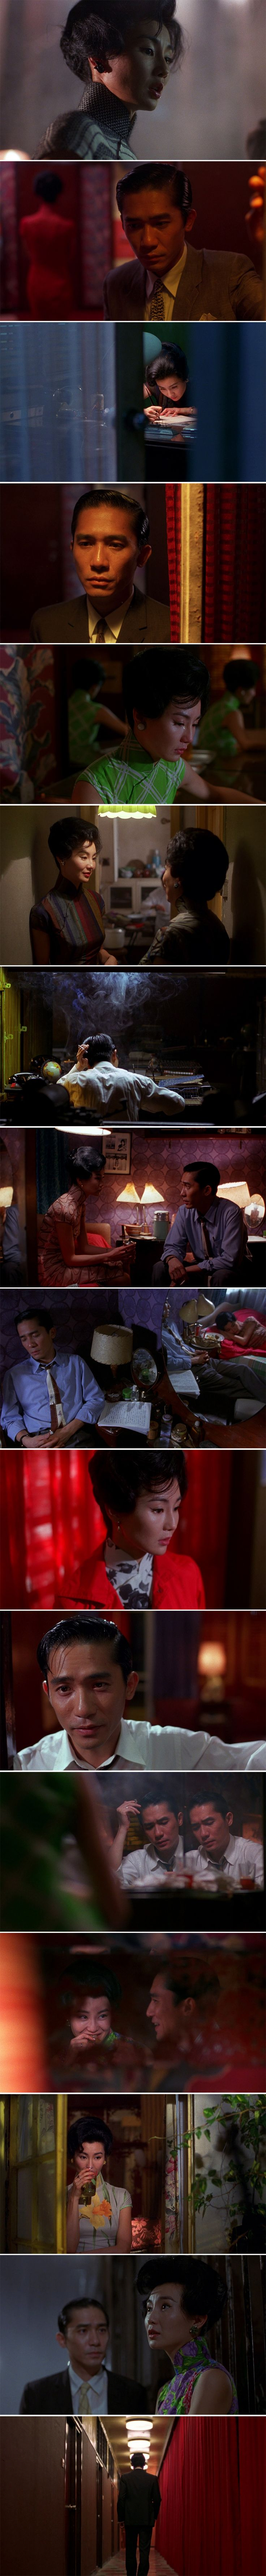 In the Mood for Love (2000) Directed by Kar-wai Wong. Cinematography by Christopher Doyle.